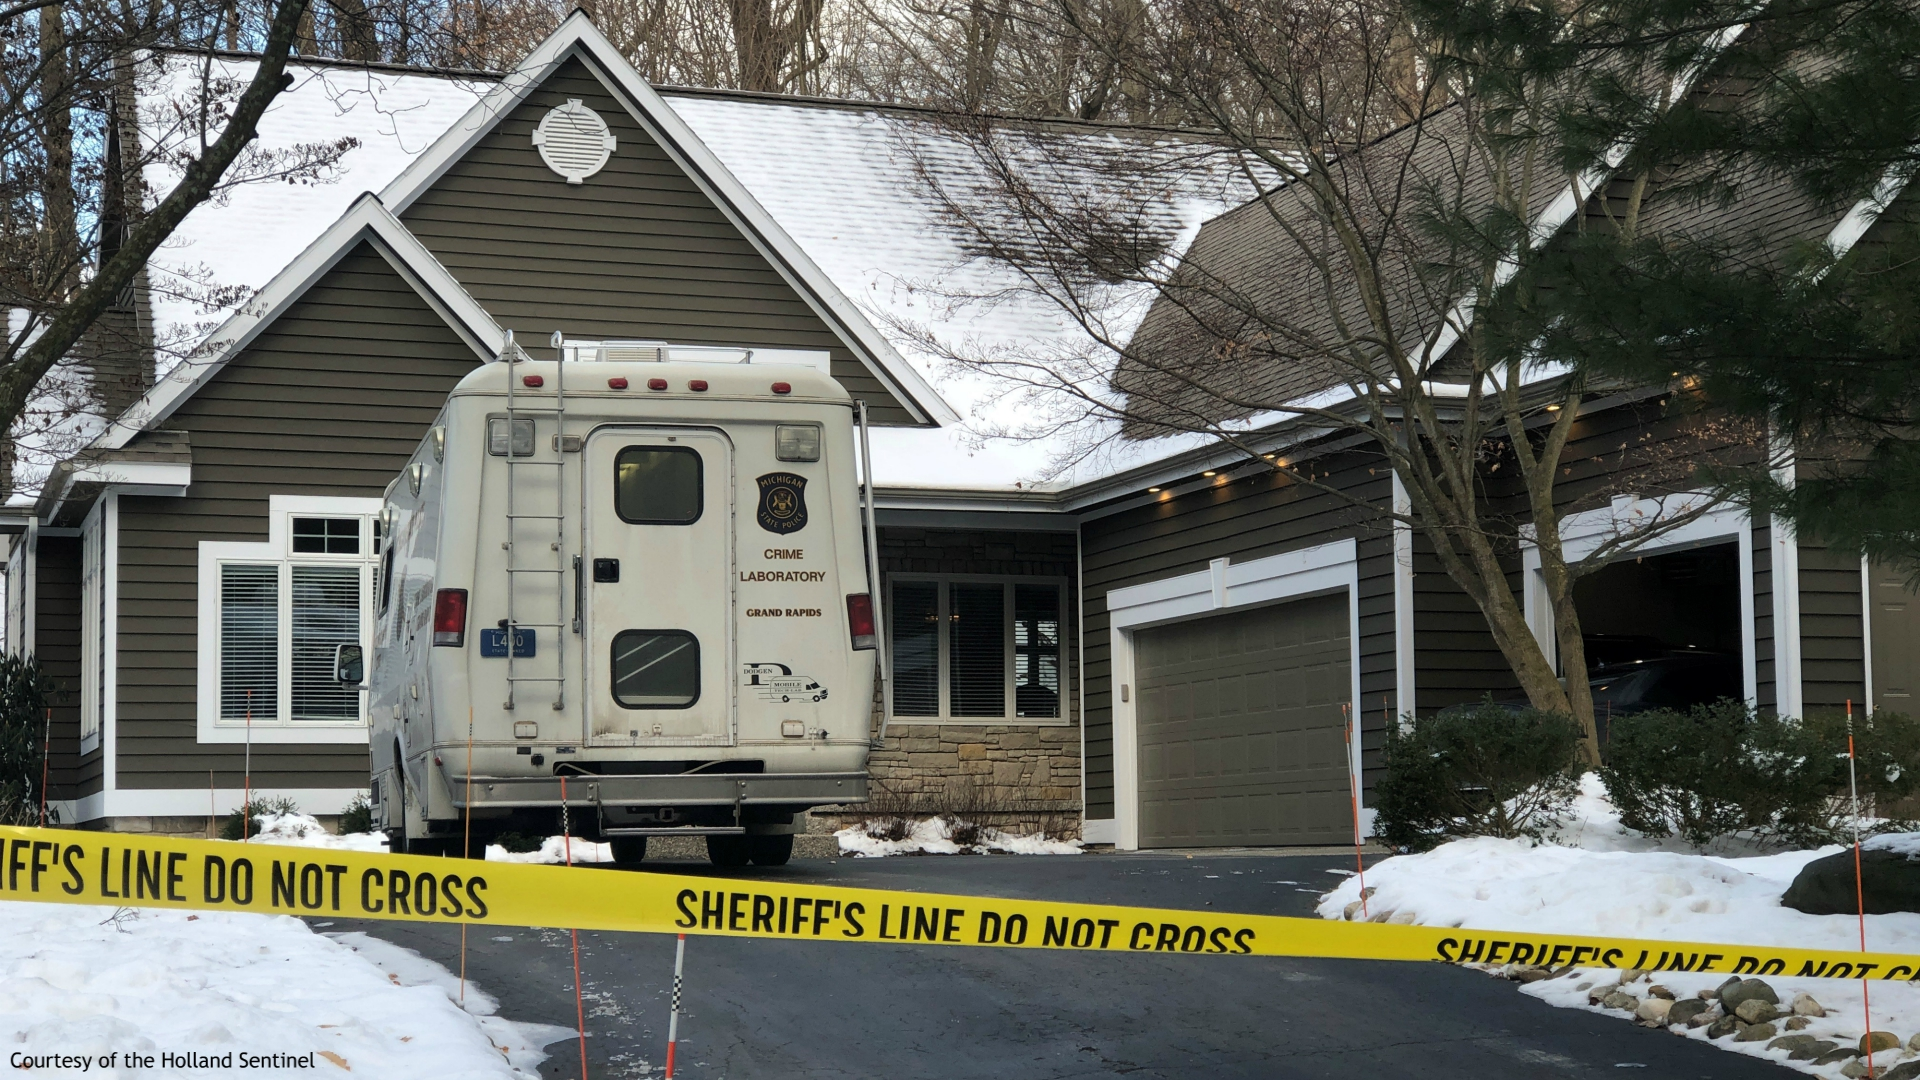 Authorities investigated a death at a Laketown Township home on Feb. 18, 2020. (Courtesy of the Holland Sentinel)